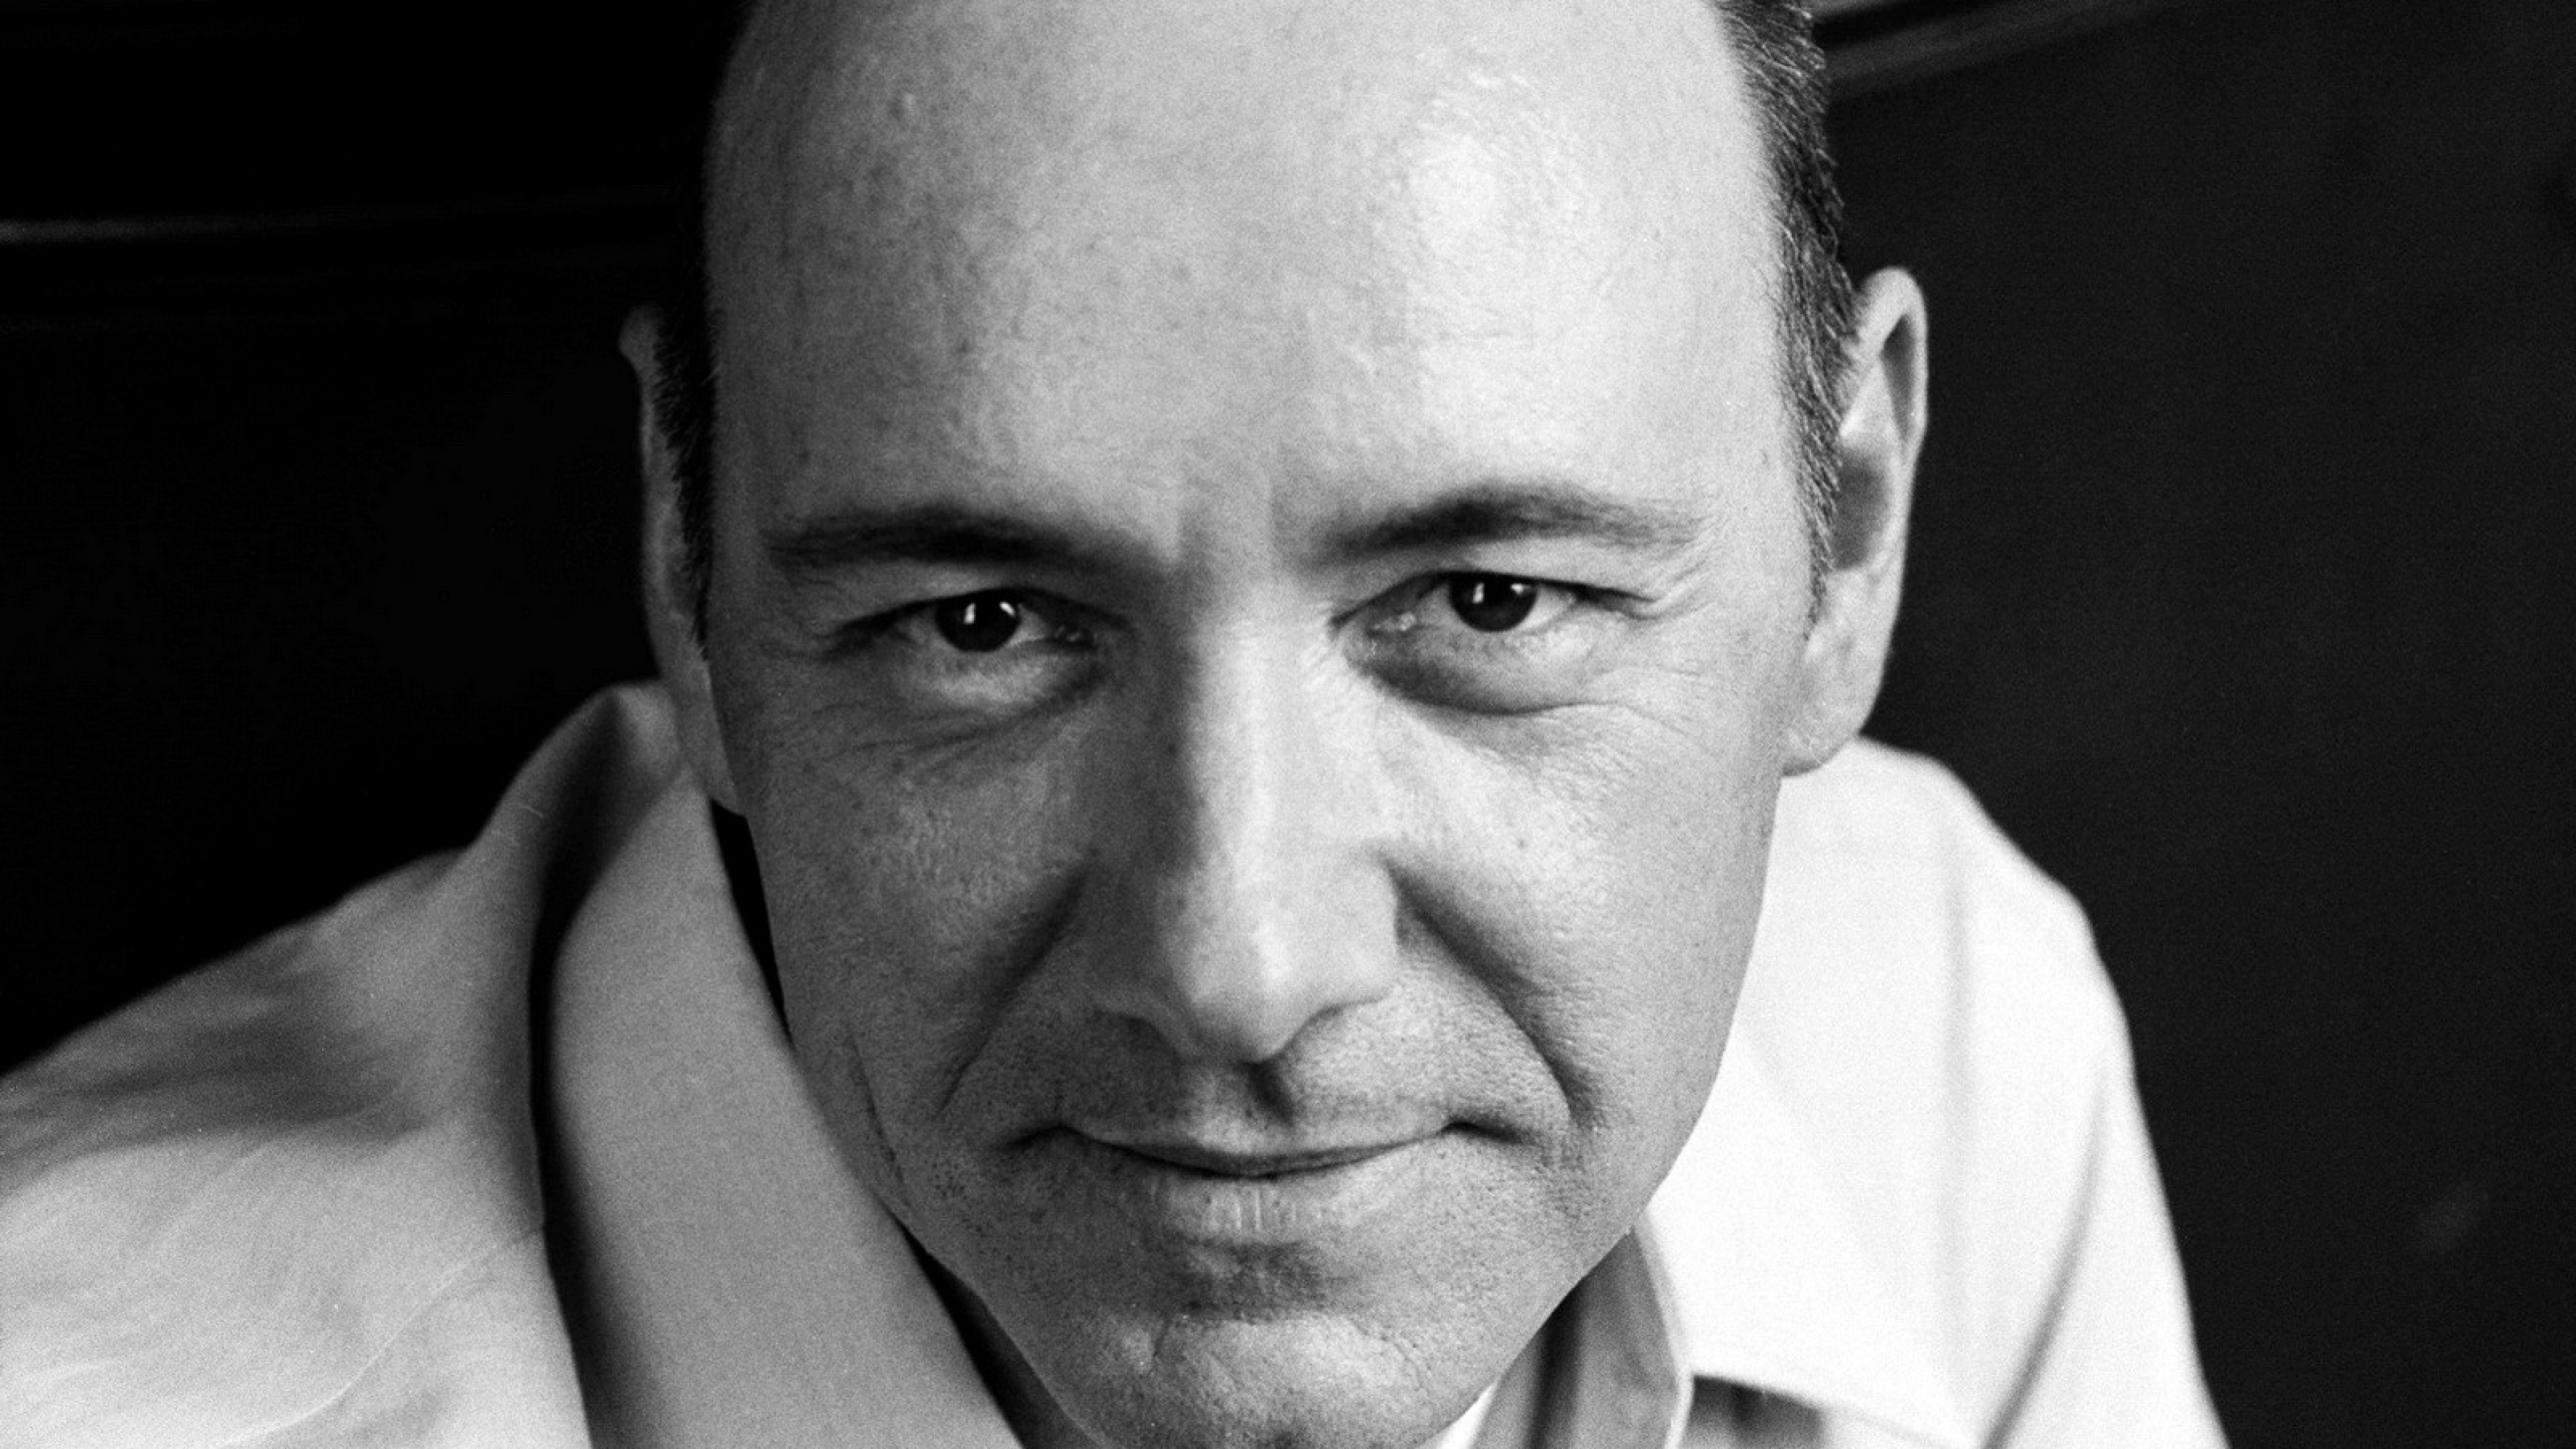 3840x2160 - Kevin Spacey Wallpapers 13